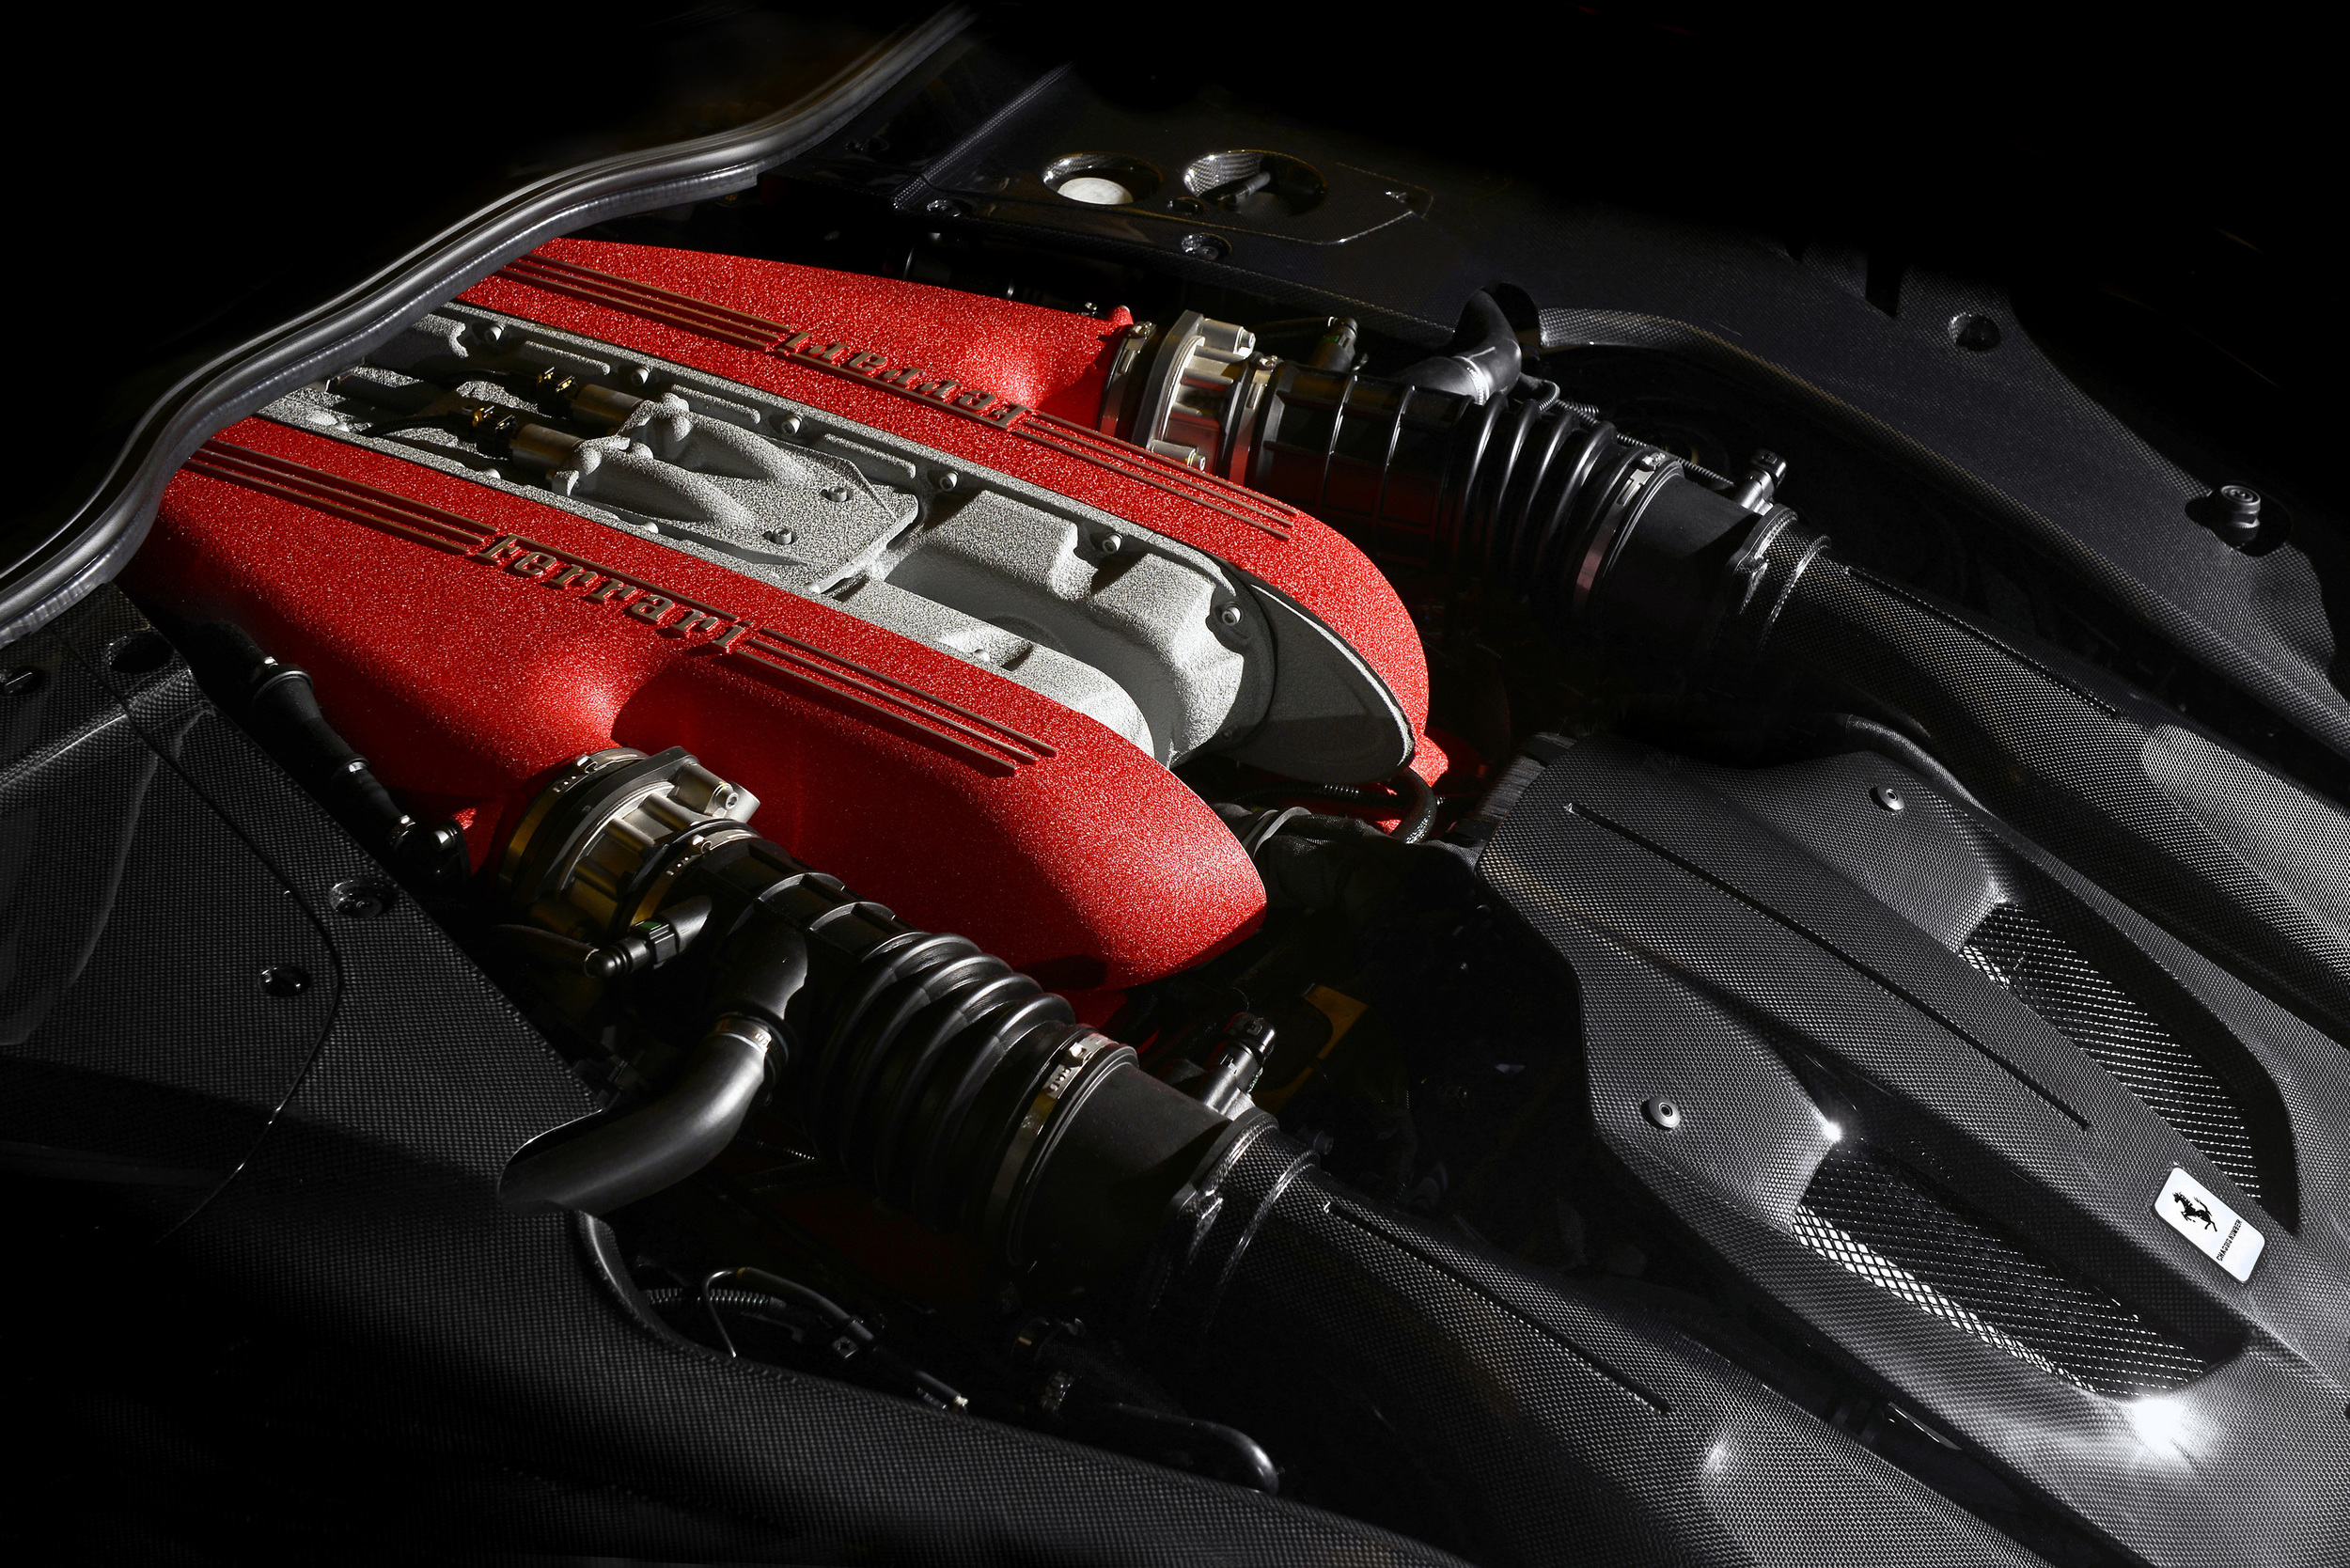 Ferrari Says F Your Efficiency, F12 Replacement to Keep V12 Screamer